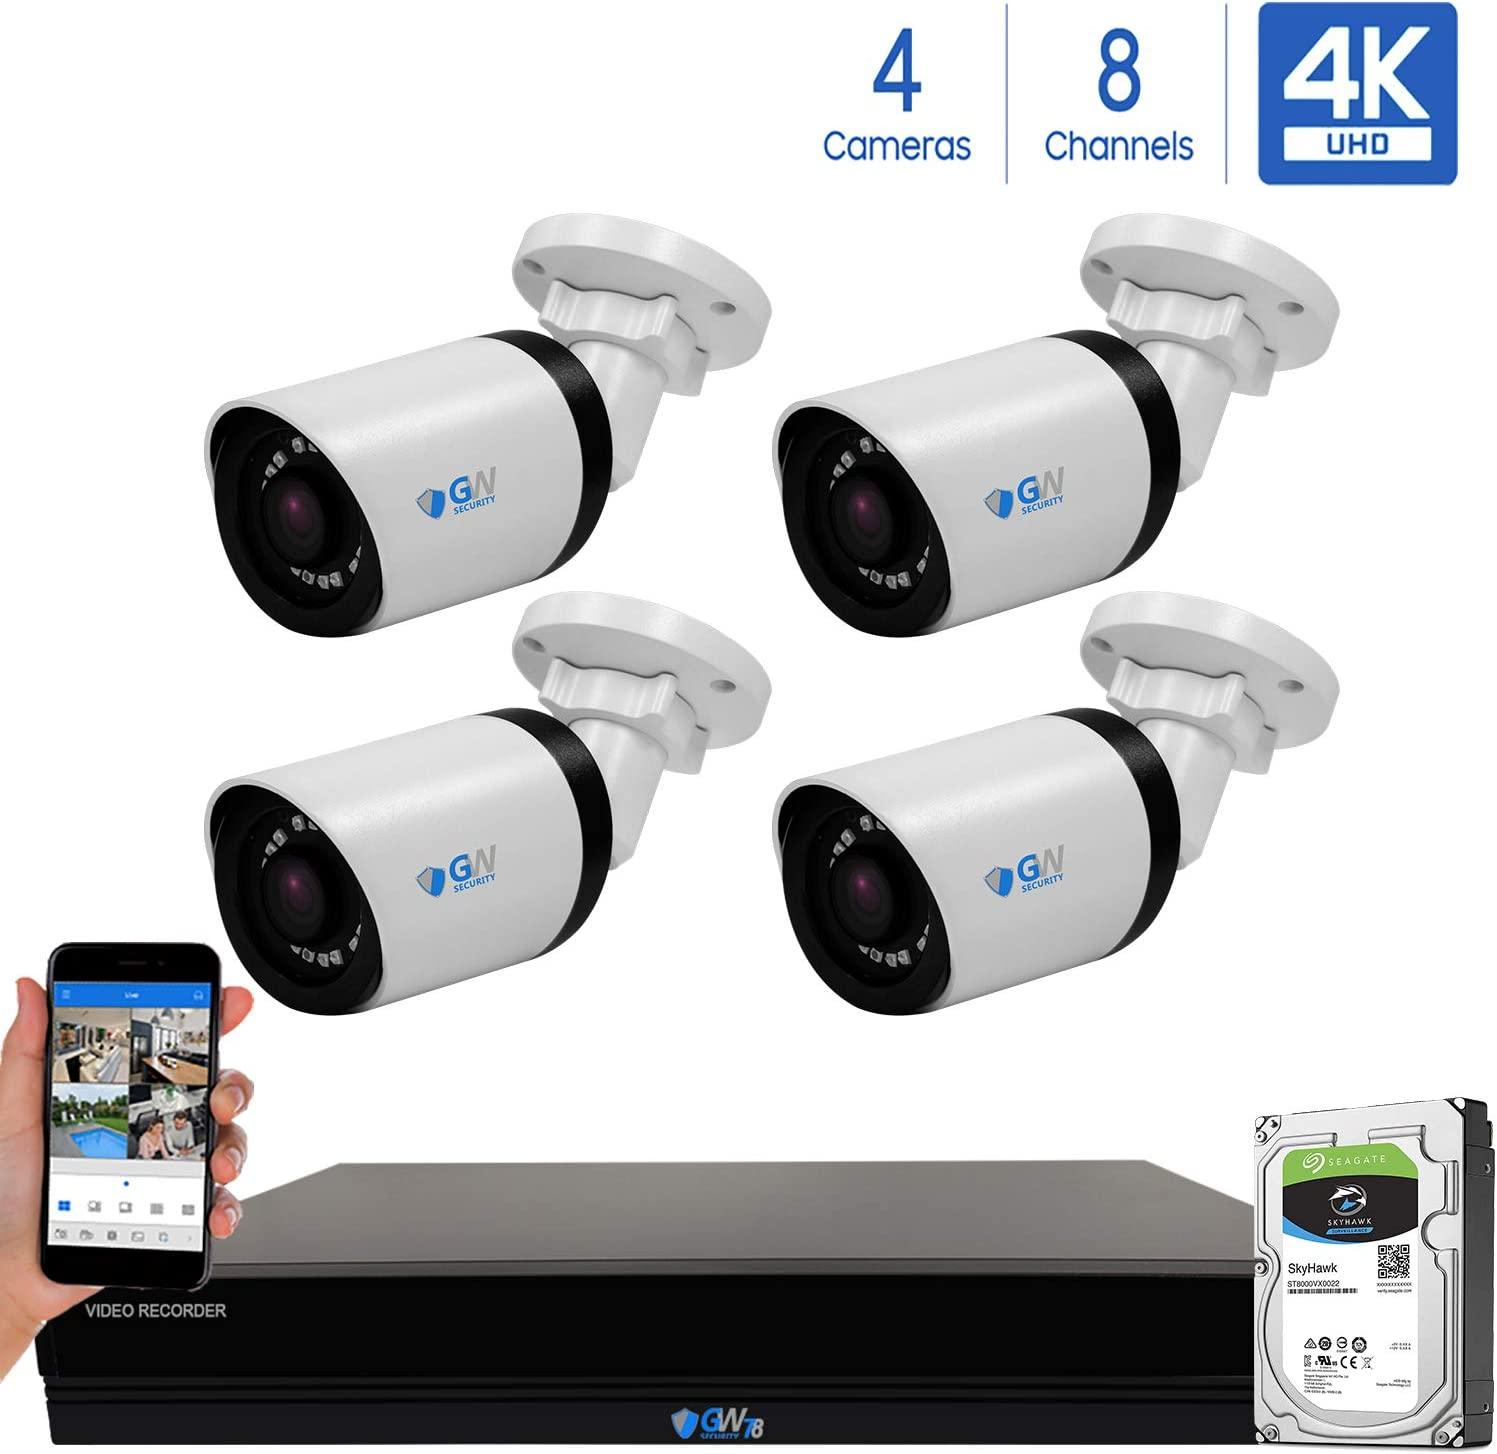 GW 8 Channel 4K H.265 CCTV DVR Security System with 4 x HD 8MP 2160P Outdoor Indoor 4K Bullet Security Cameras, 100ft Night Vision, 2TB Hard Drive Pre-Installed